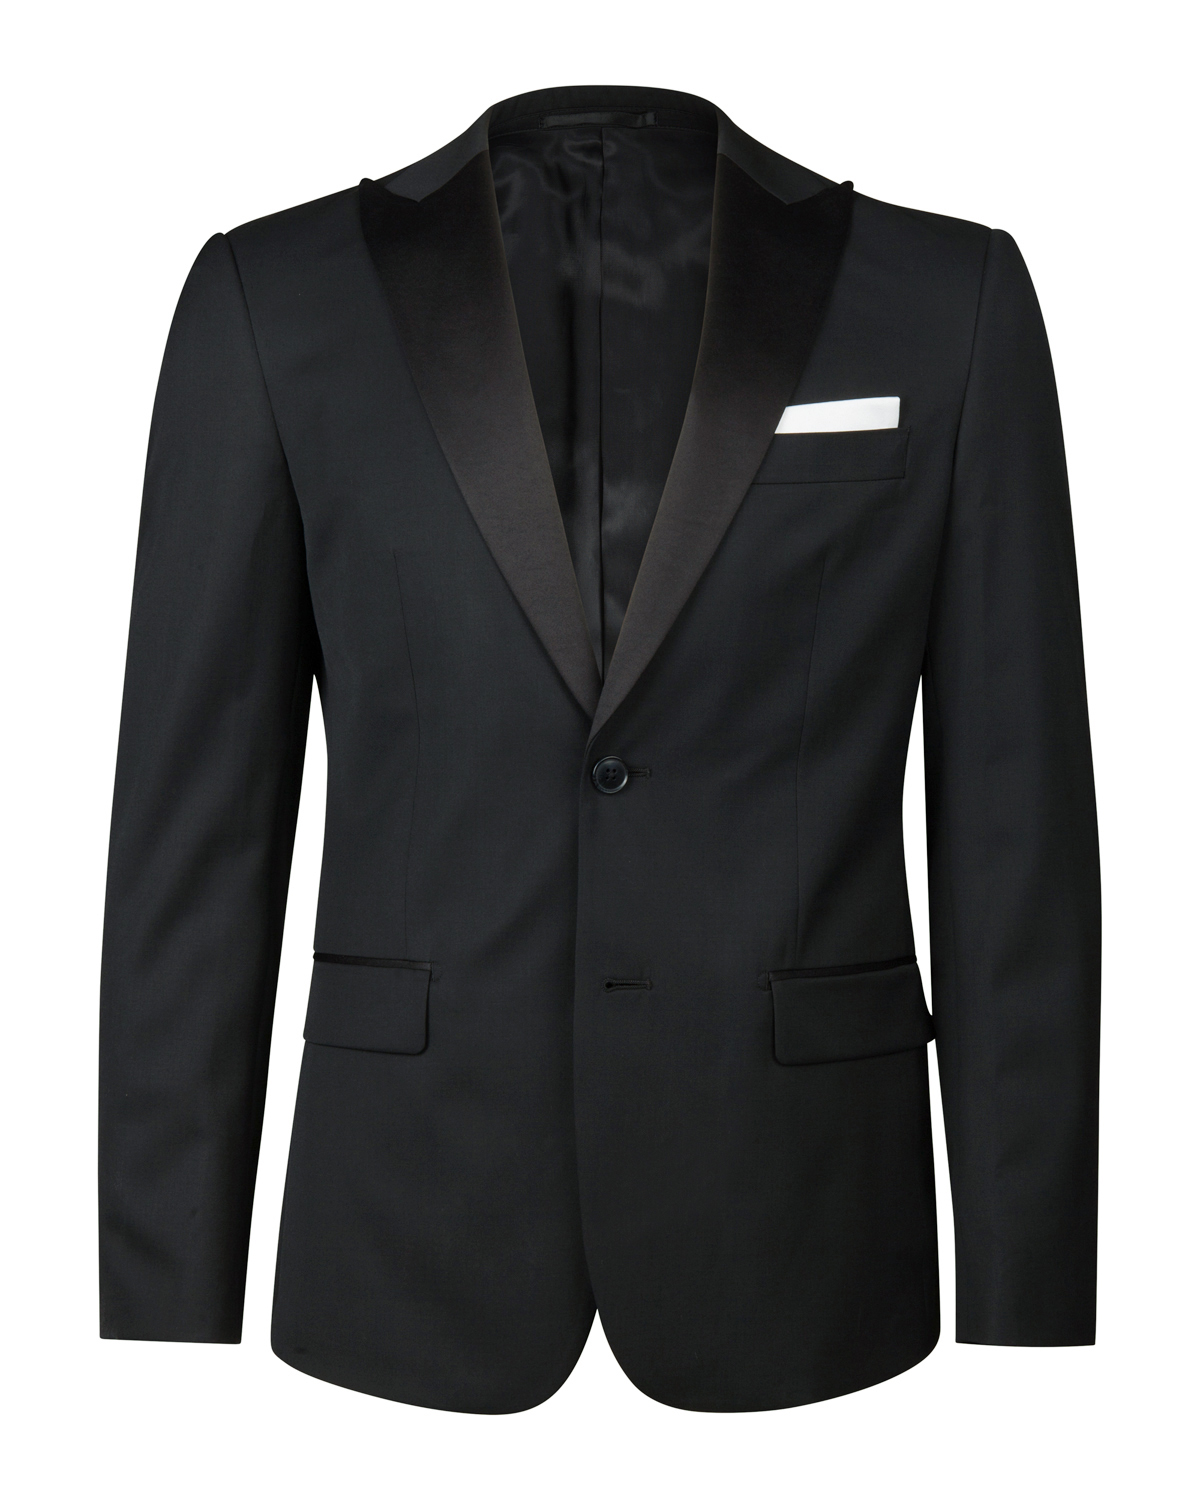 BLAZER SLIM FIT HOMME_BLAZER SLIM FIT HOMME, Noir